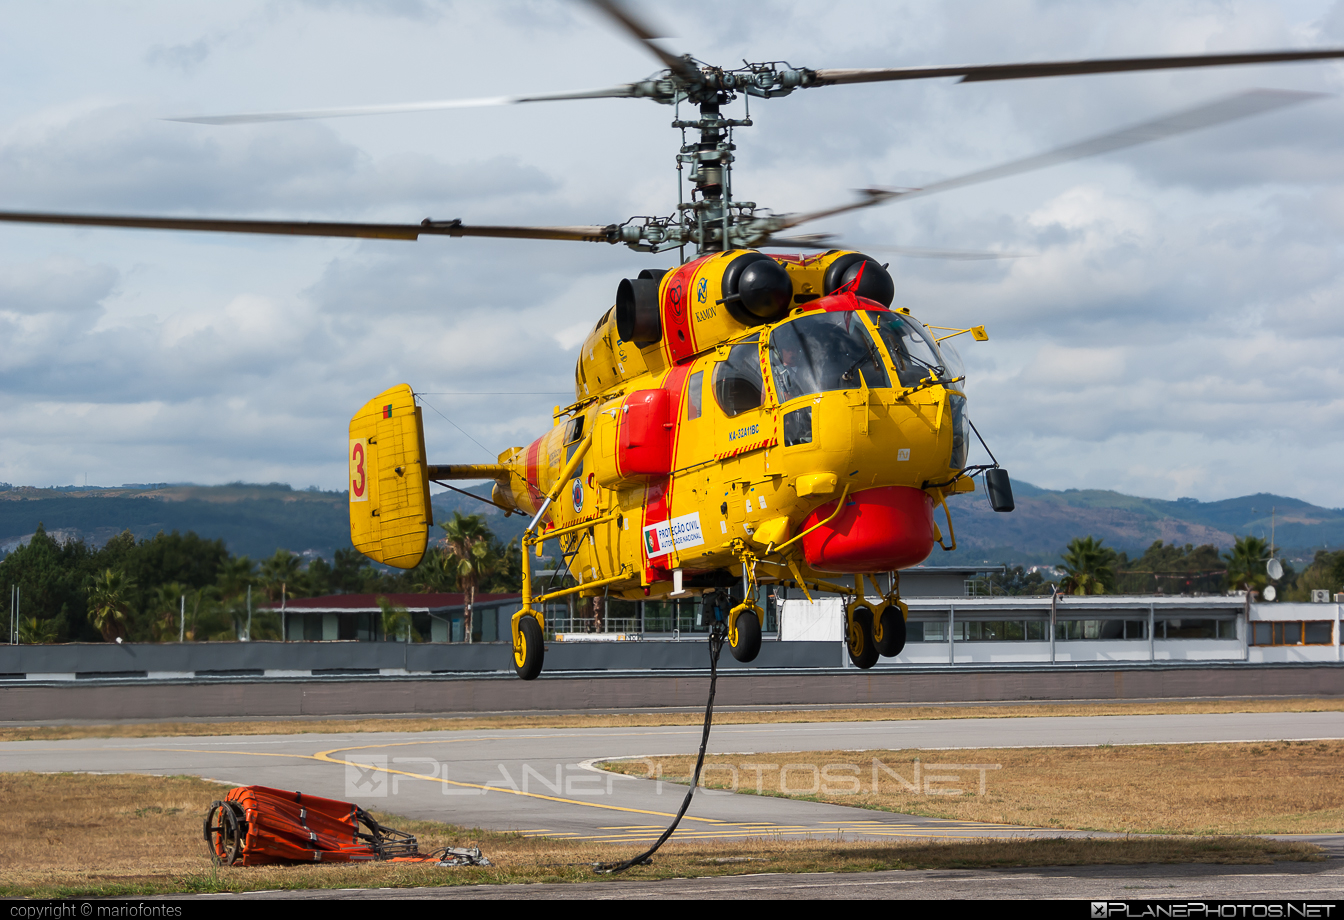 Kamov Ka-32A11BC - CS-HMP operated by Proteção Civil (Portugal Civil Protection) #ka32 #ka32a11bc #kamov #kamov32 #kamovka32 #portugalcivilprotection #protecaocivil